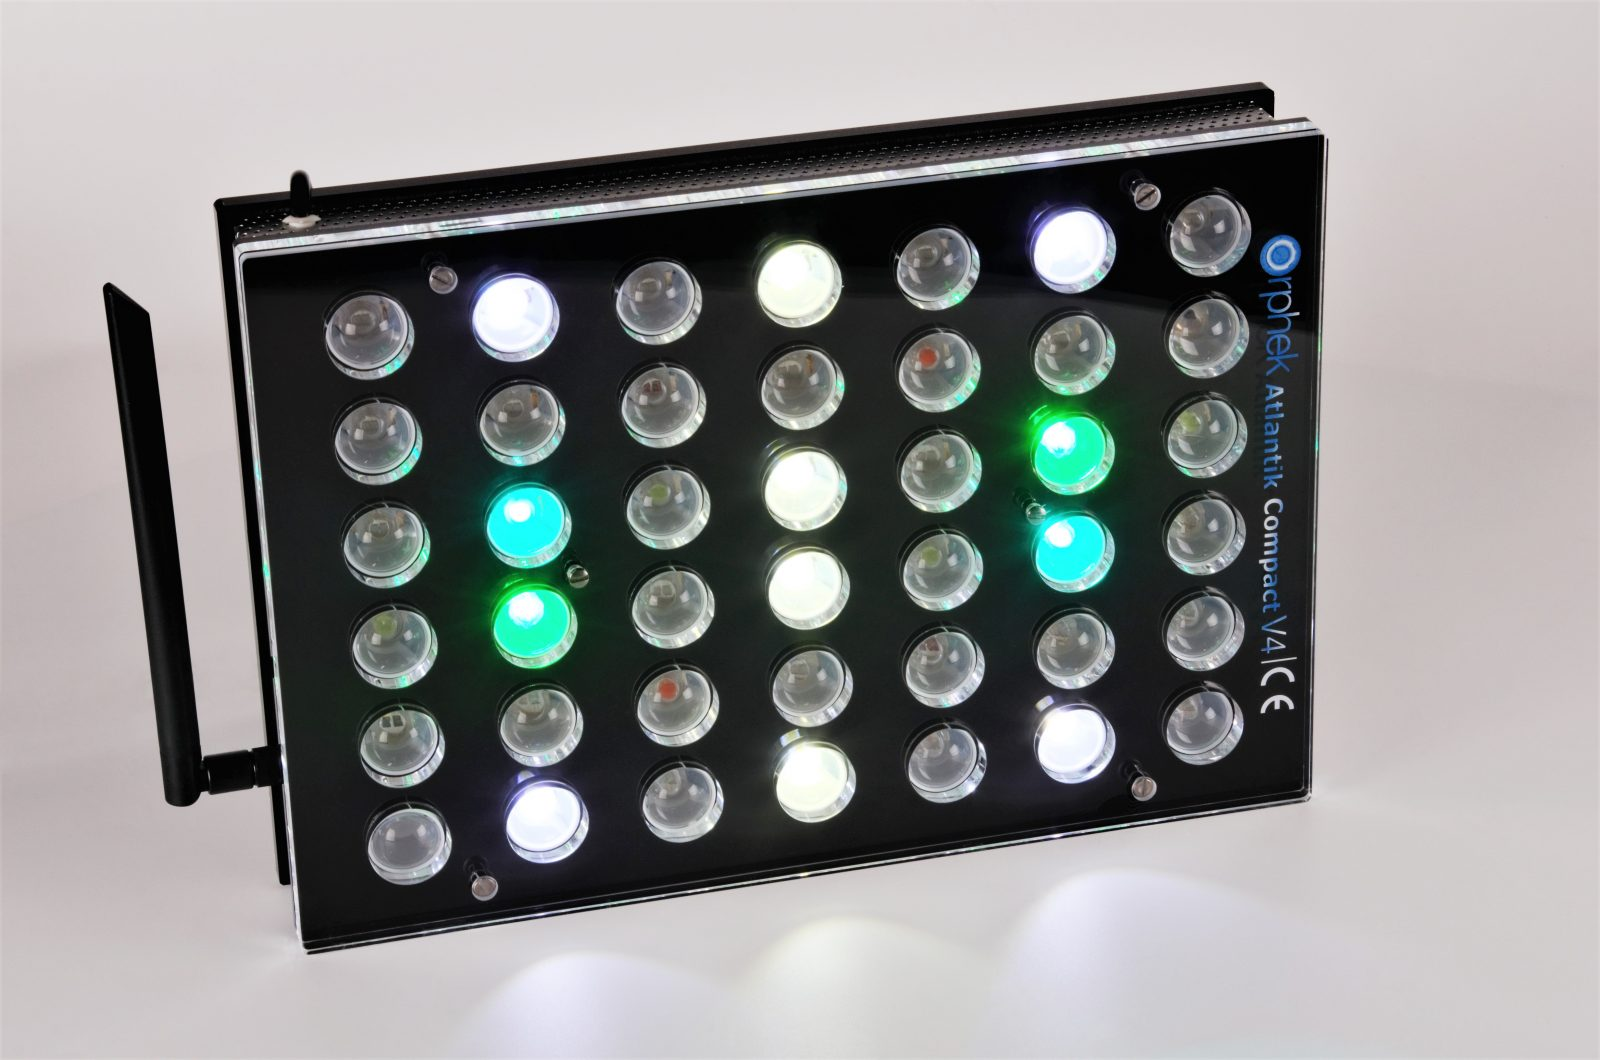 Orphek-Aquarium-LED-Lighting-Atlantik -Compact-V4-light -on-channel 1